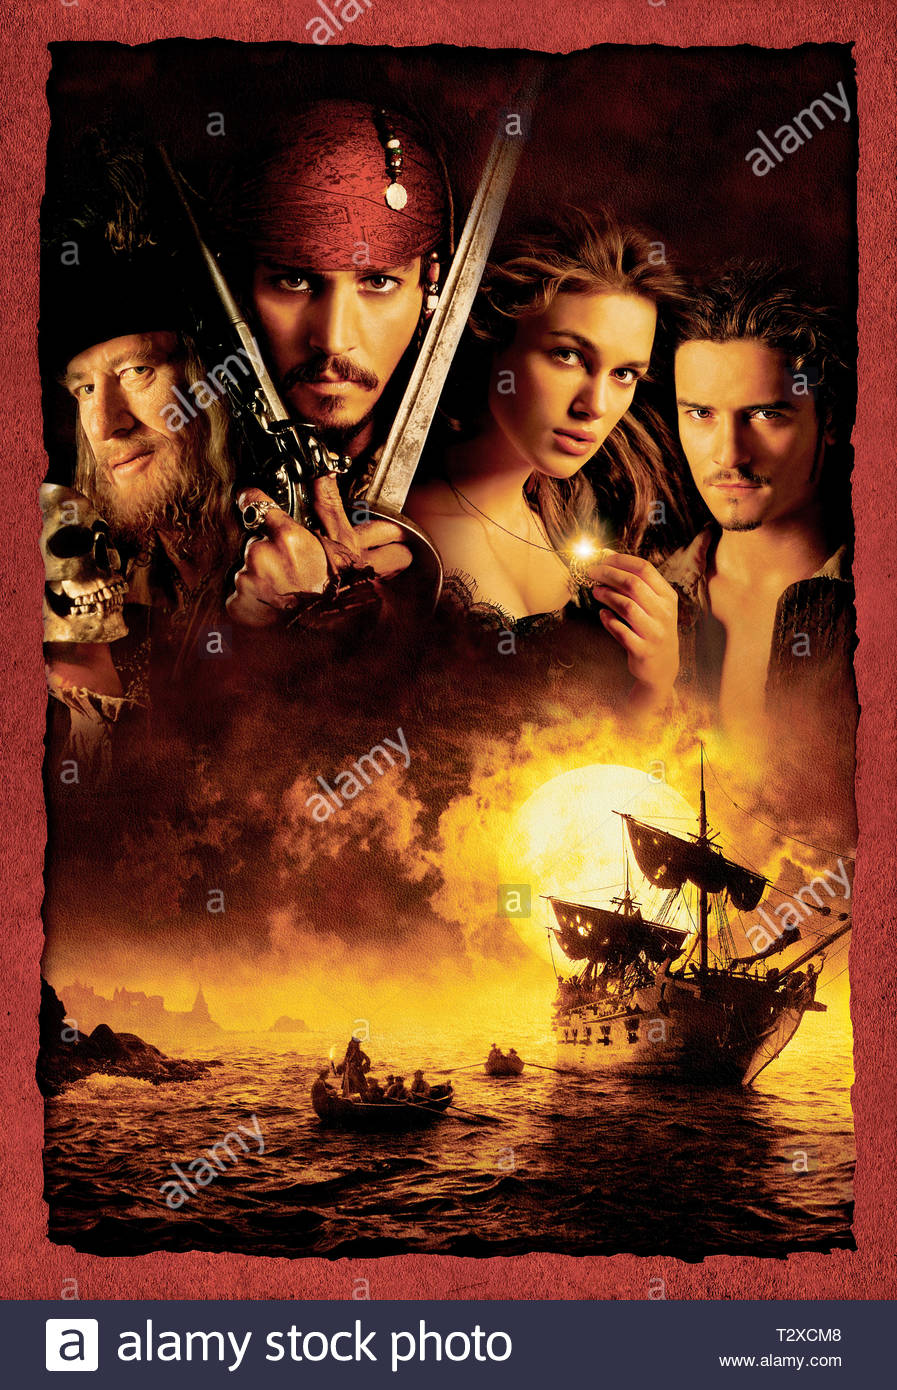 GEOFFREY RUSH, JOHNNY DEPP, KEIRA KNIGHTLEY, ORLANDO BLOOM, PIRATES OF THE CARIBBEAN: THE CURSE OF THE BLACK PEARL, 2003 - Stock Image